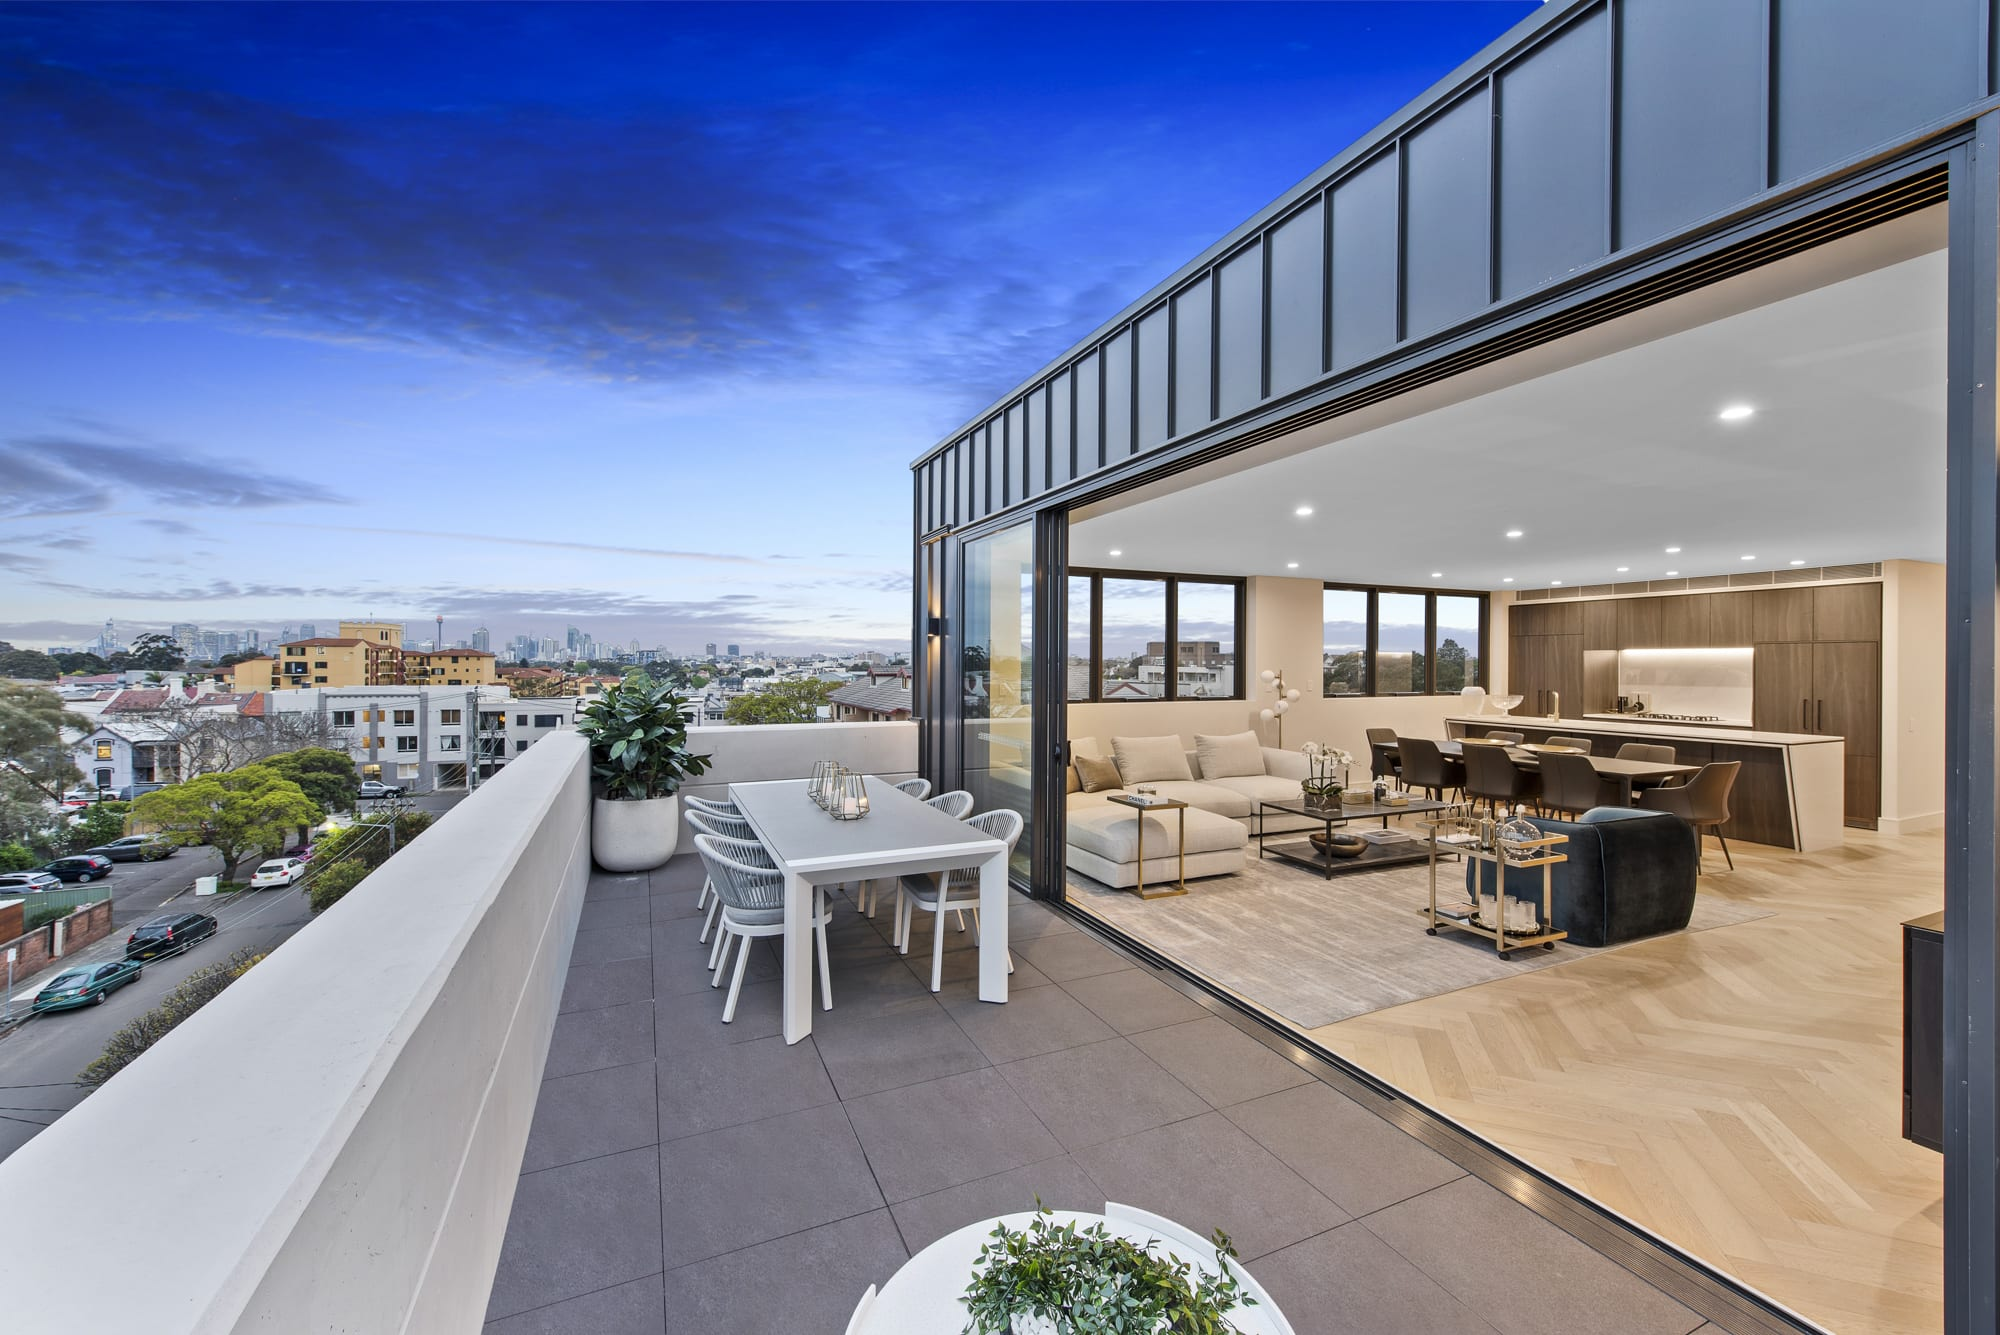 Leichhardt's 'Atelier' completes construction and launches final sales phase